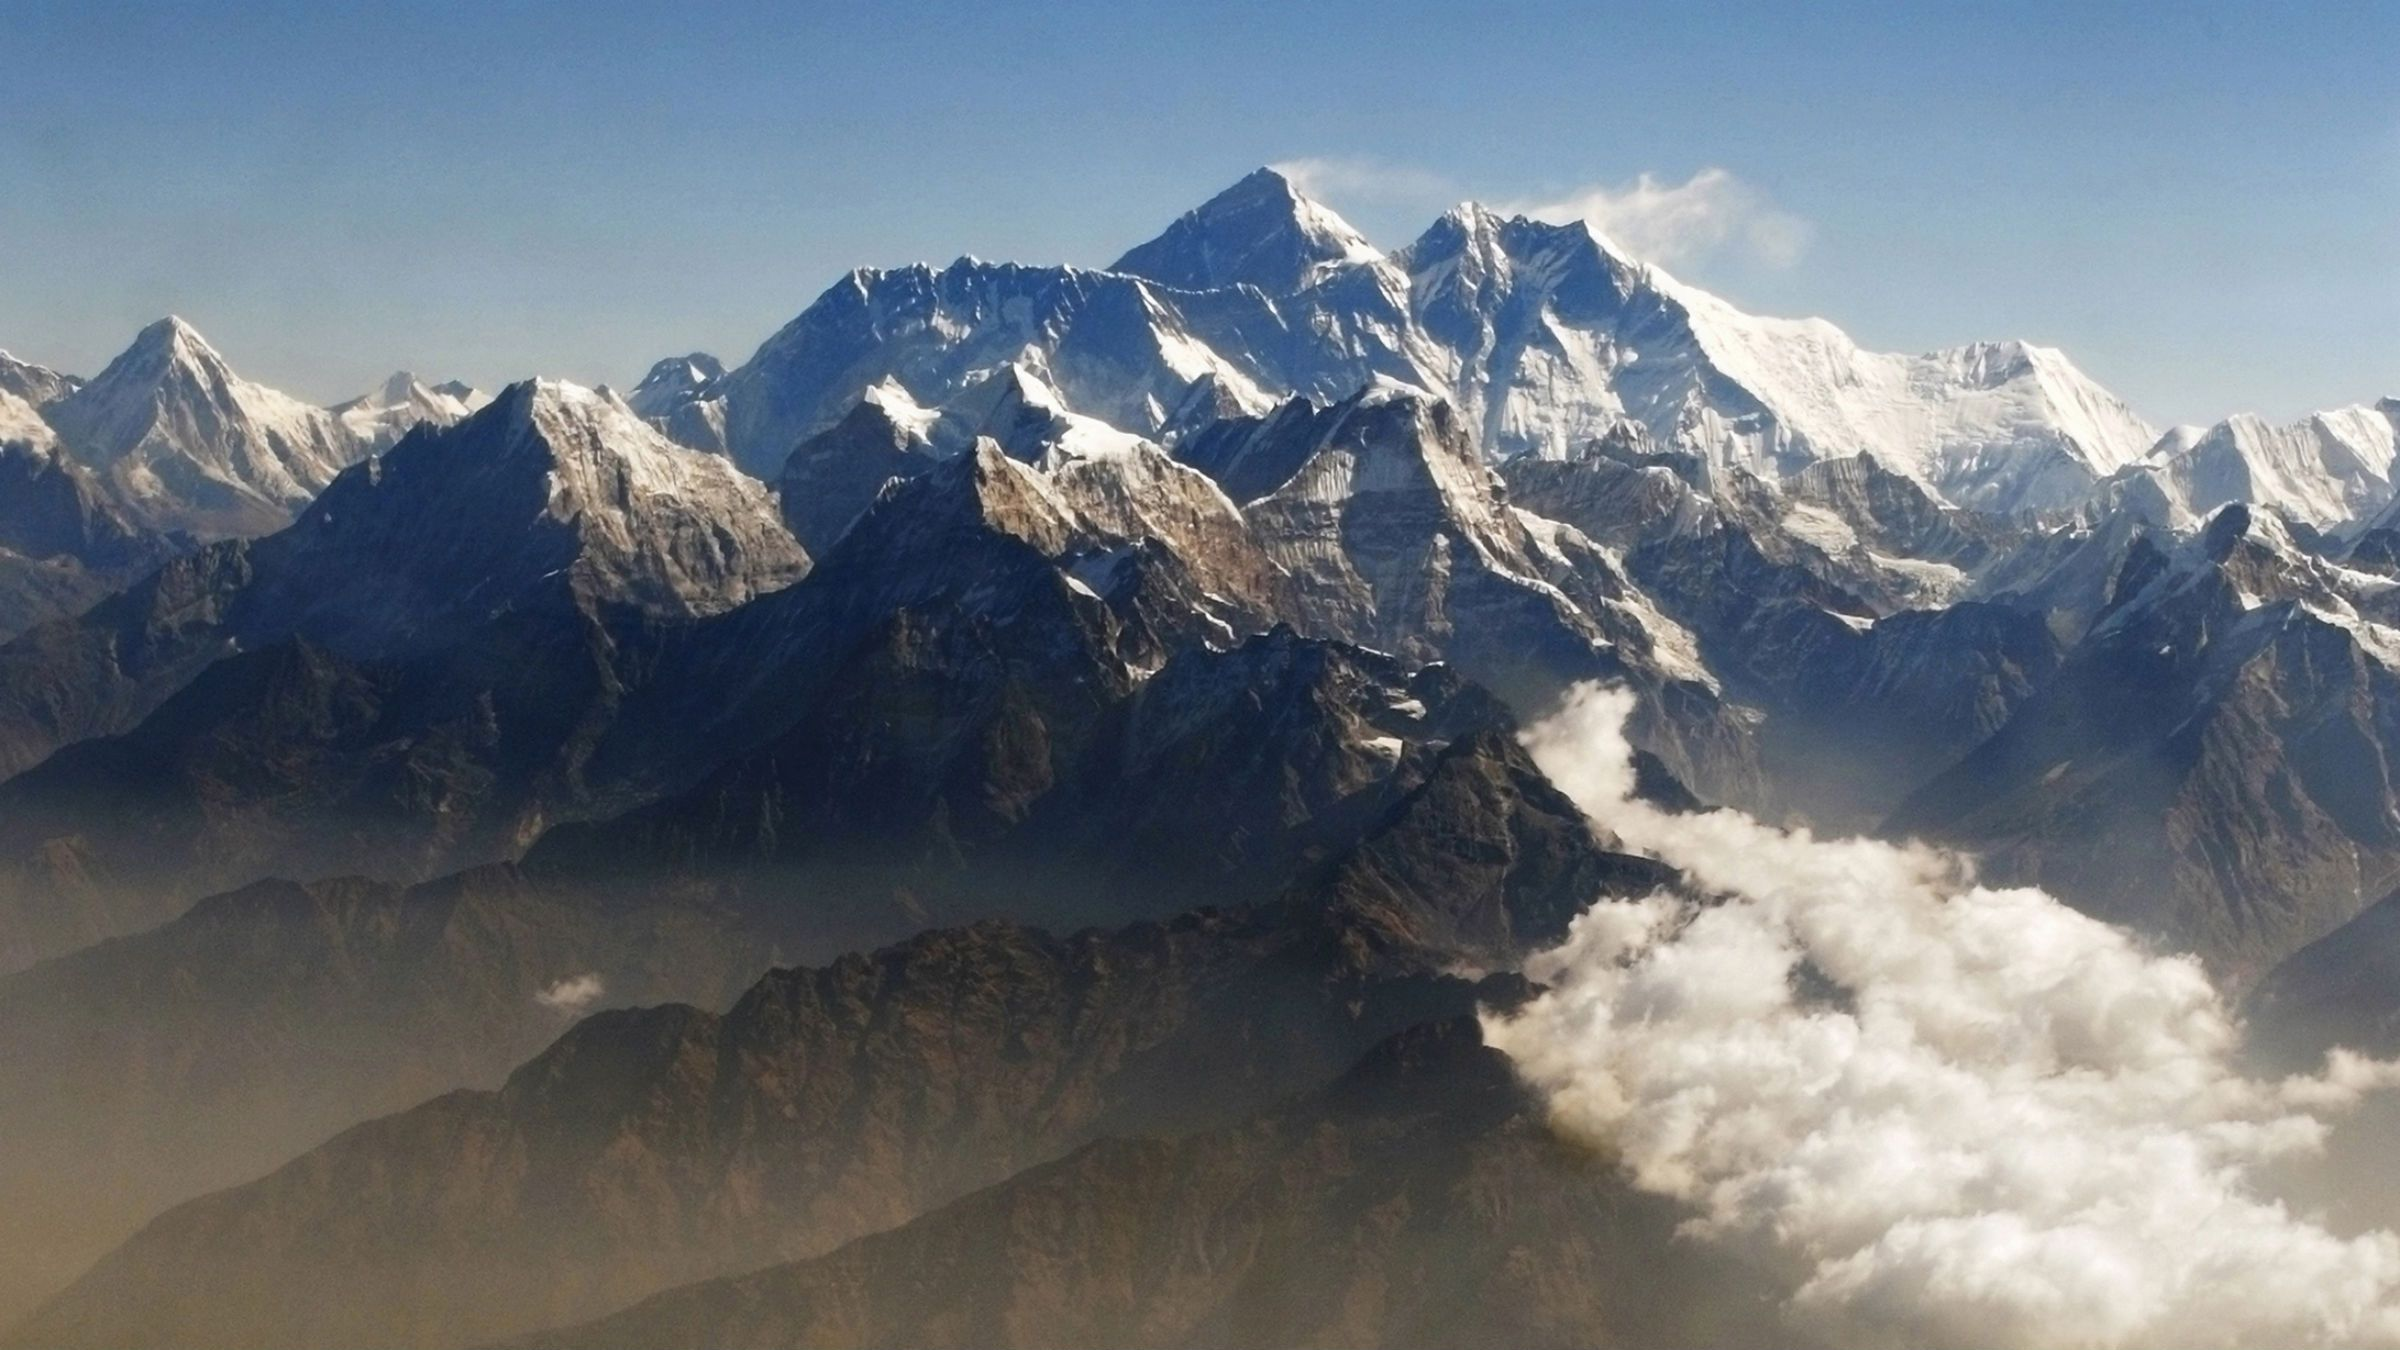 Why Sherpas are more likely to die on Mount Everest than Western